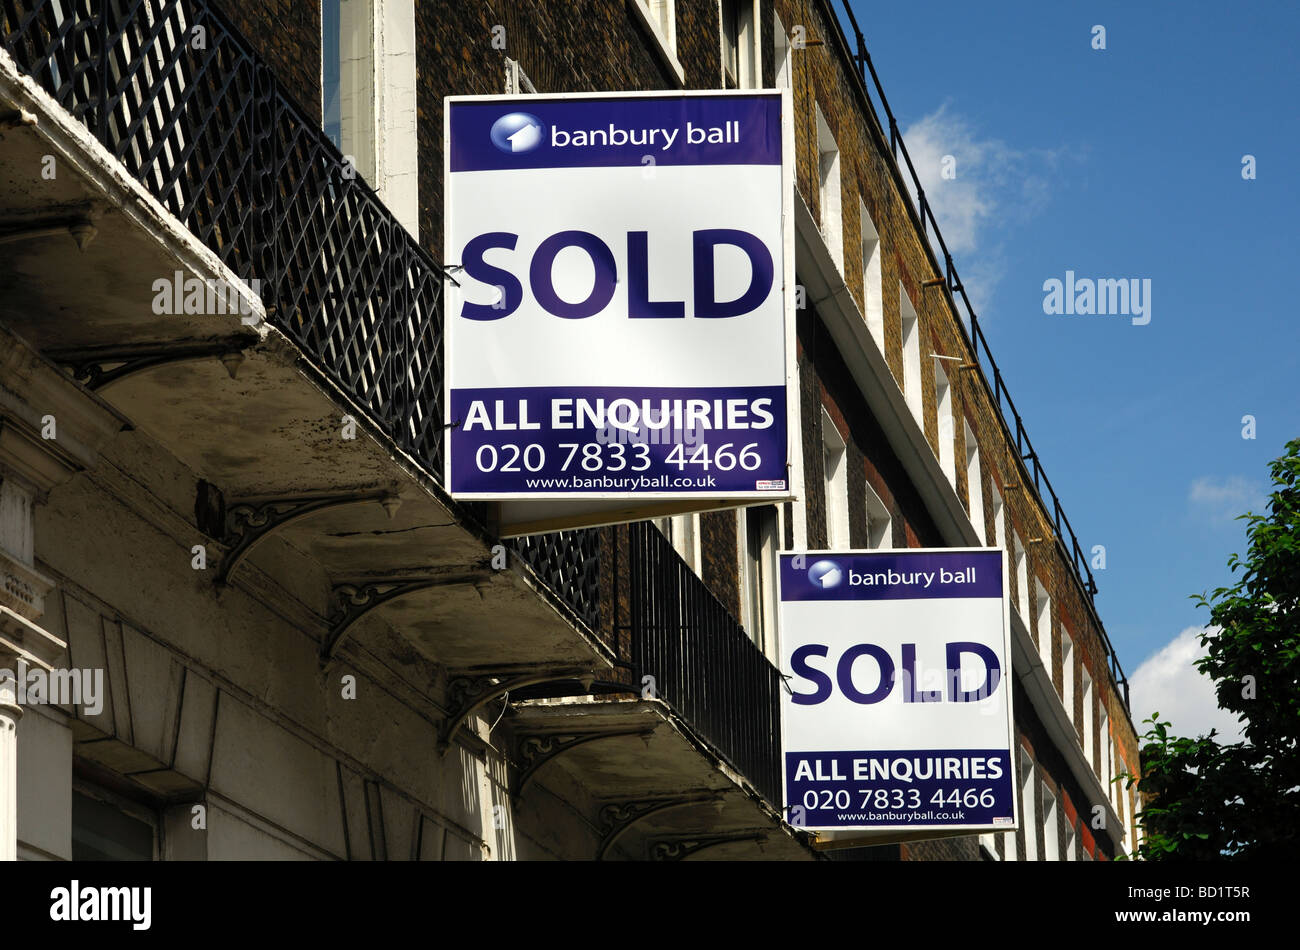 Sold signs of the Banbury Ball estate agents at a building London United Kingdom - Stock Image